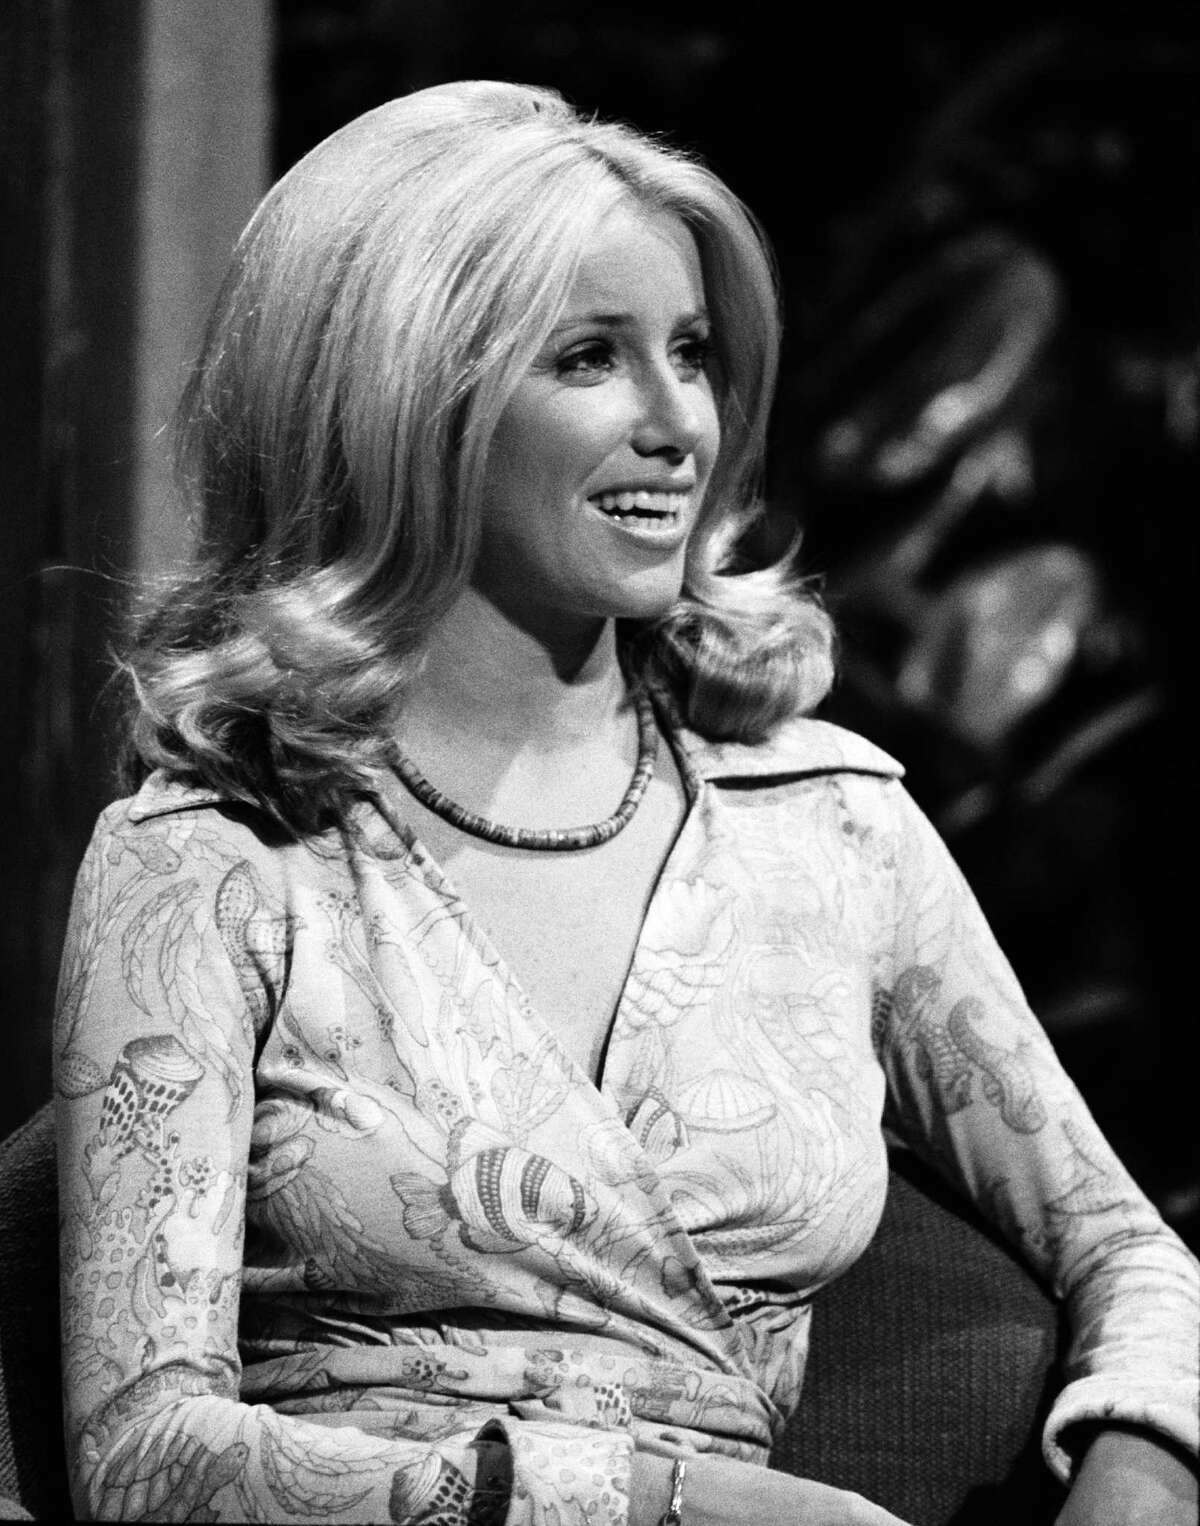 Actress Suzanne Somers, born October 16, 1946, is best known for the 1970s sitcom